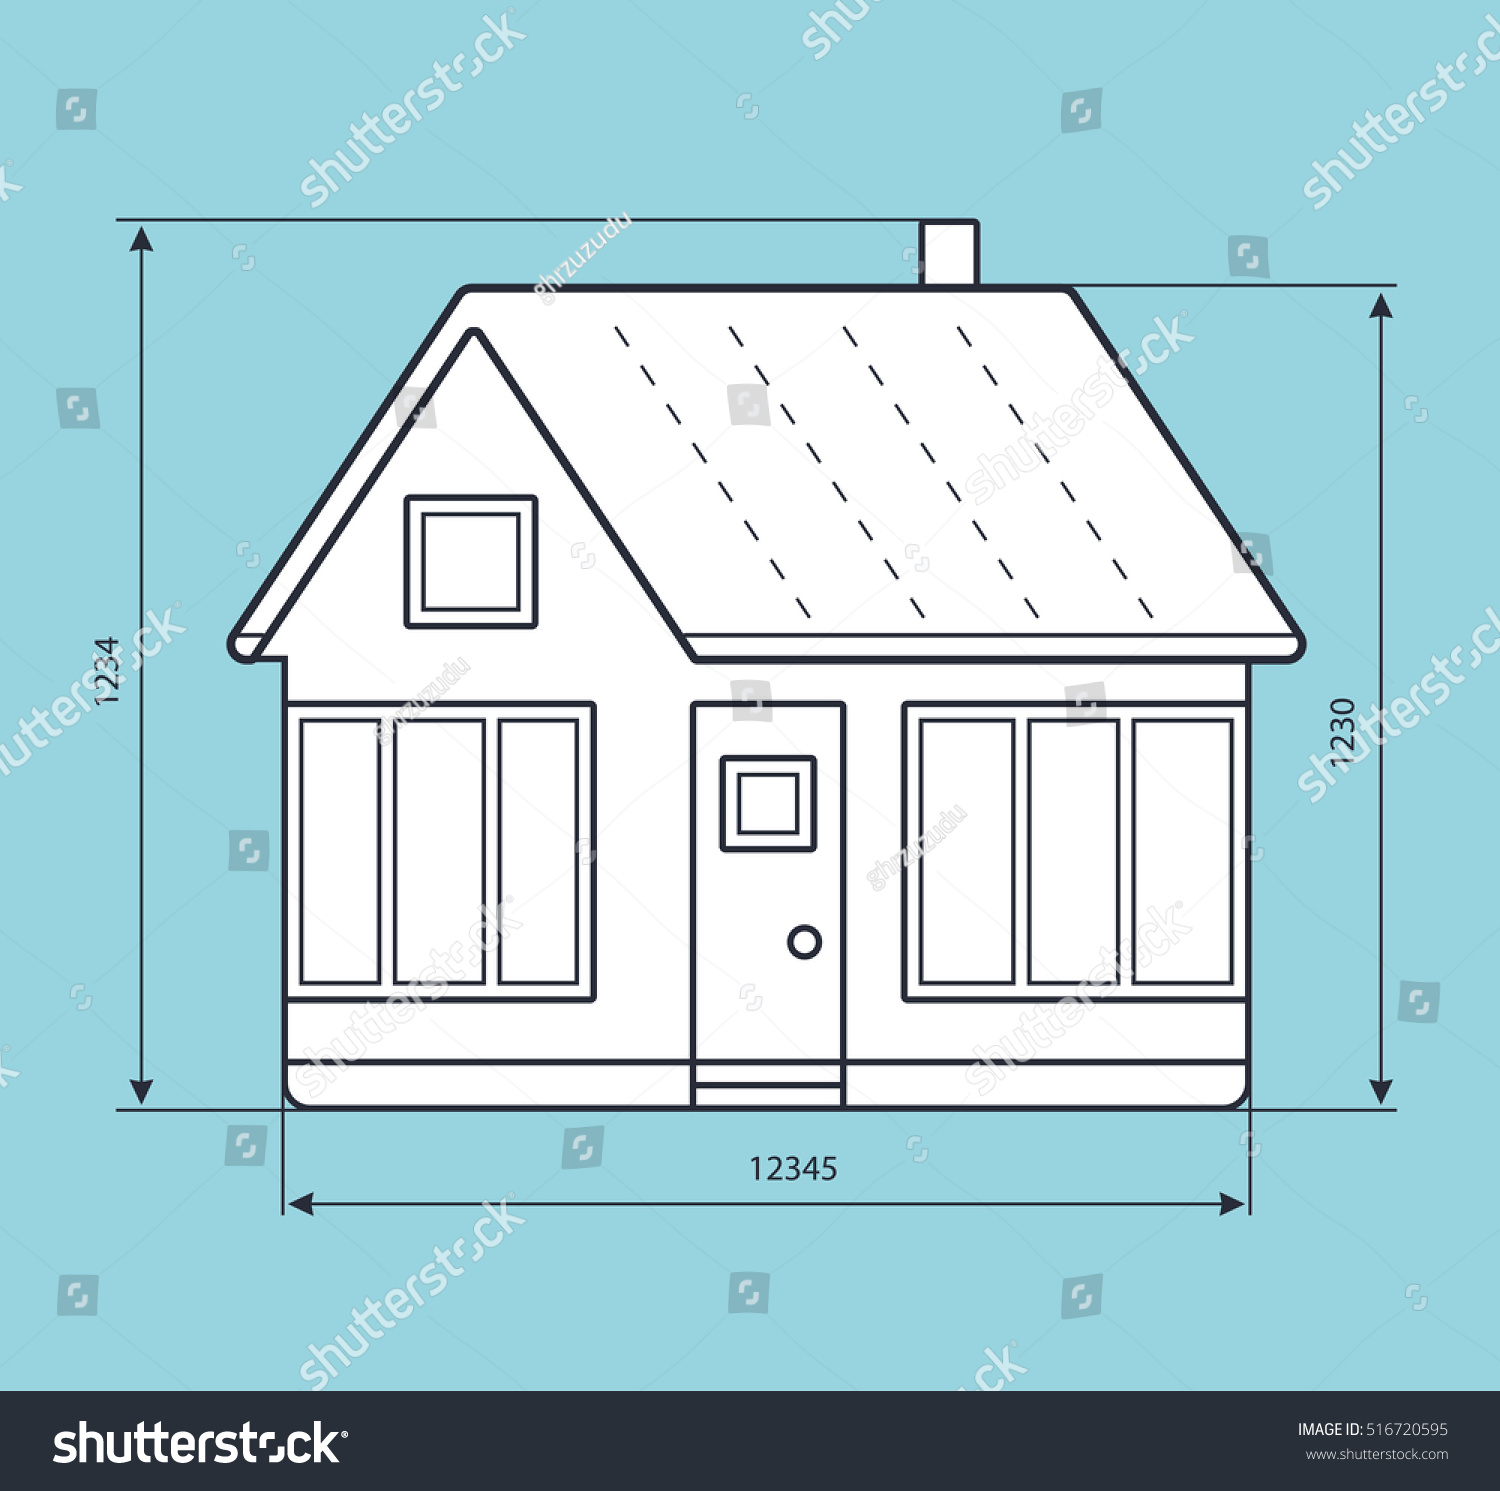 House project blueprint drawing dimension lines stock vector house project blueprint drawing with dimension lines malvernweather Image collections